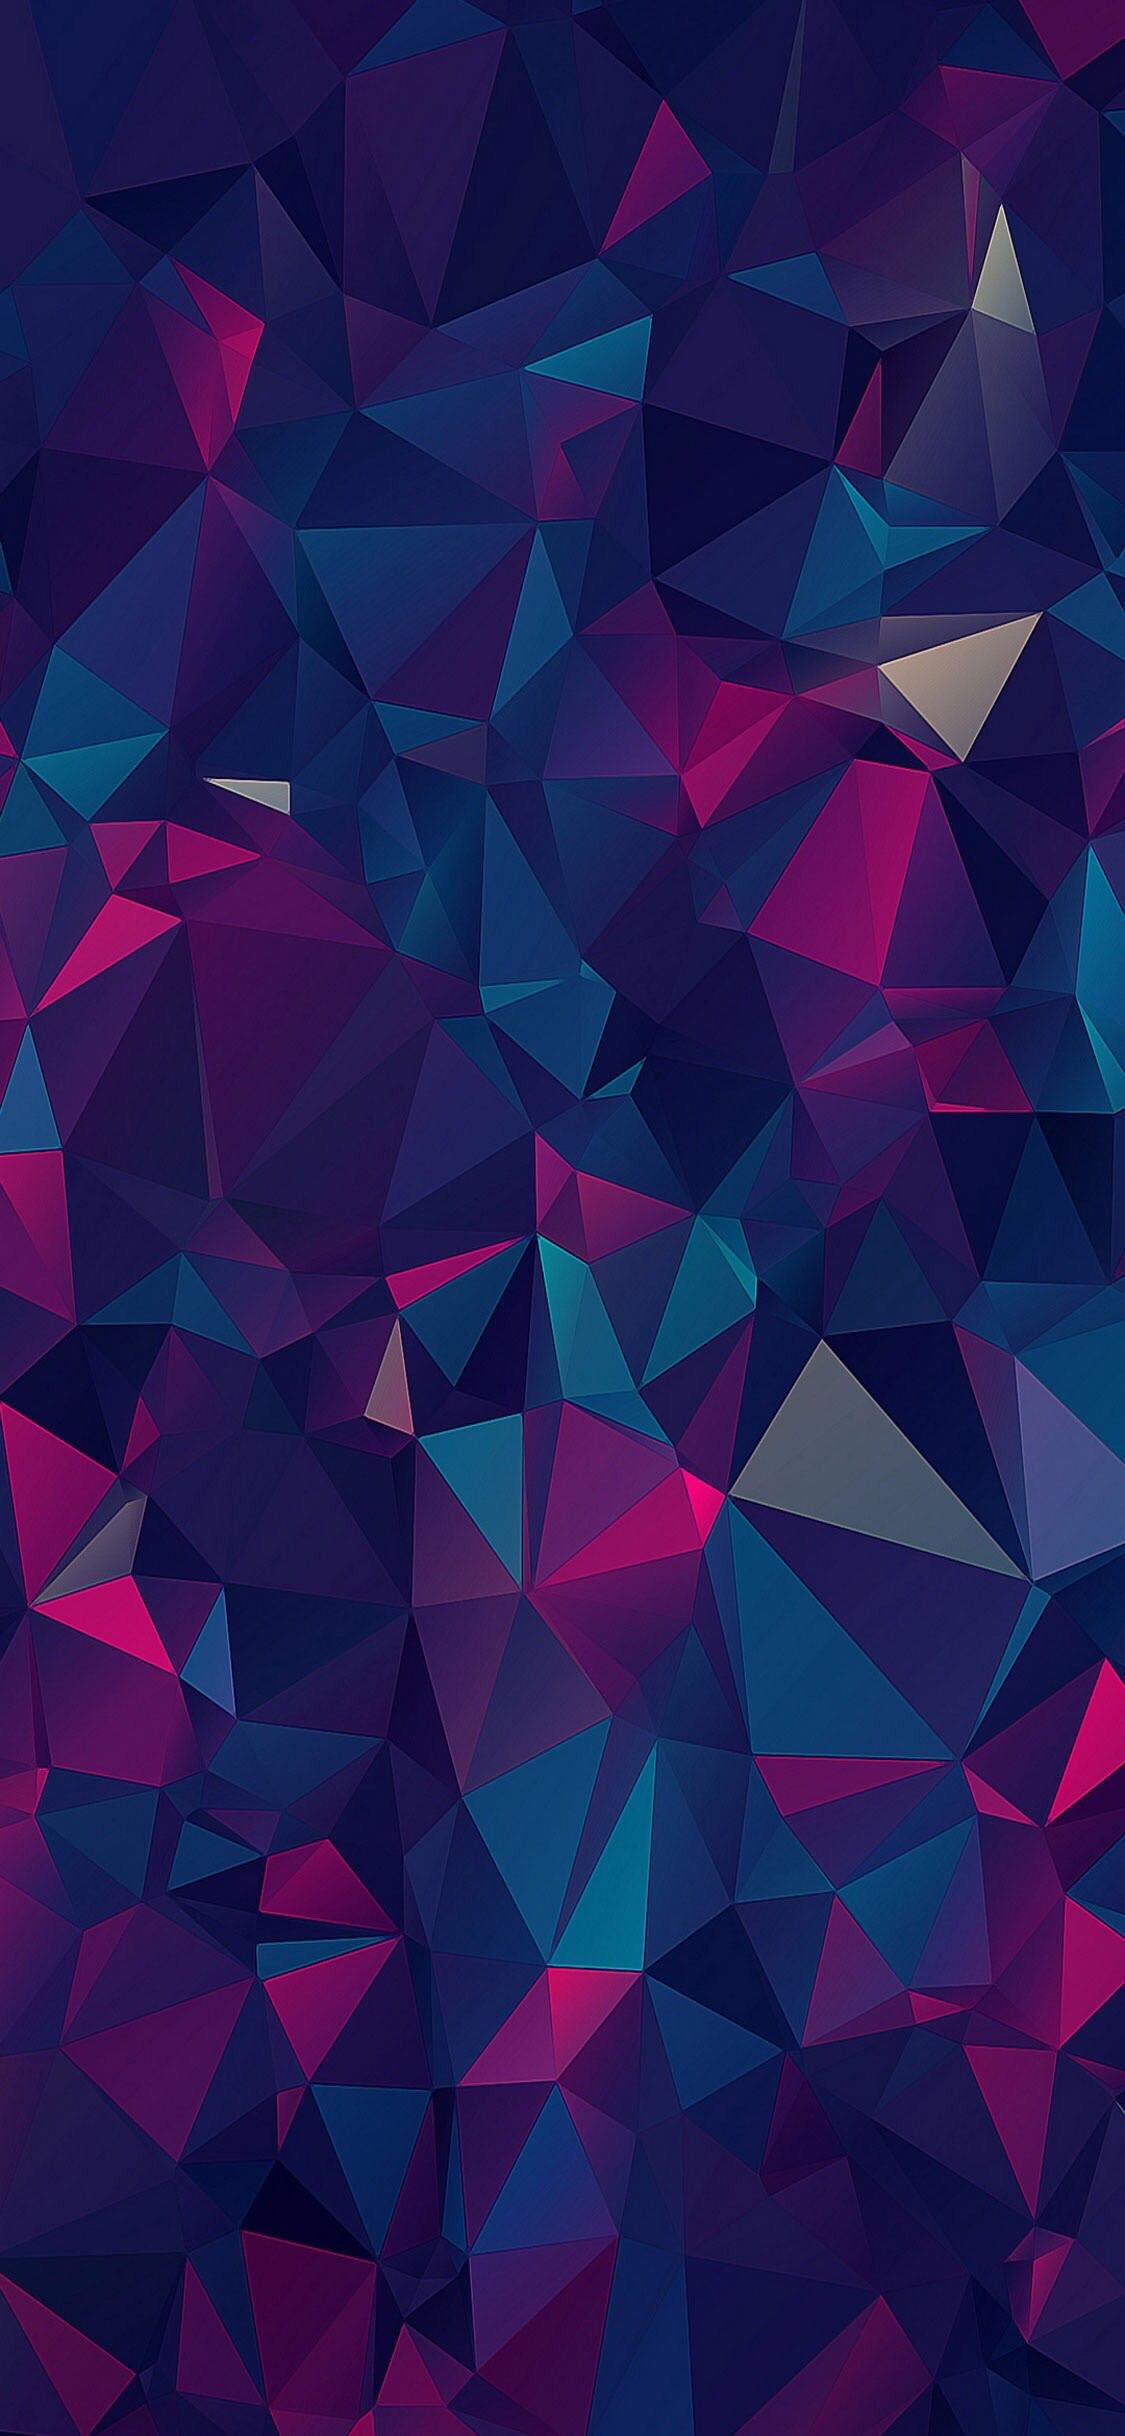 Ios 11 Iphone X Purple Blue Clean Simple Abstract Apple Wallpaper Iphone 8 Iphone 5s Wallpaper Best Iphone Wallpapers Beautiful Wallpapers Backgrounds